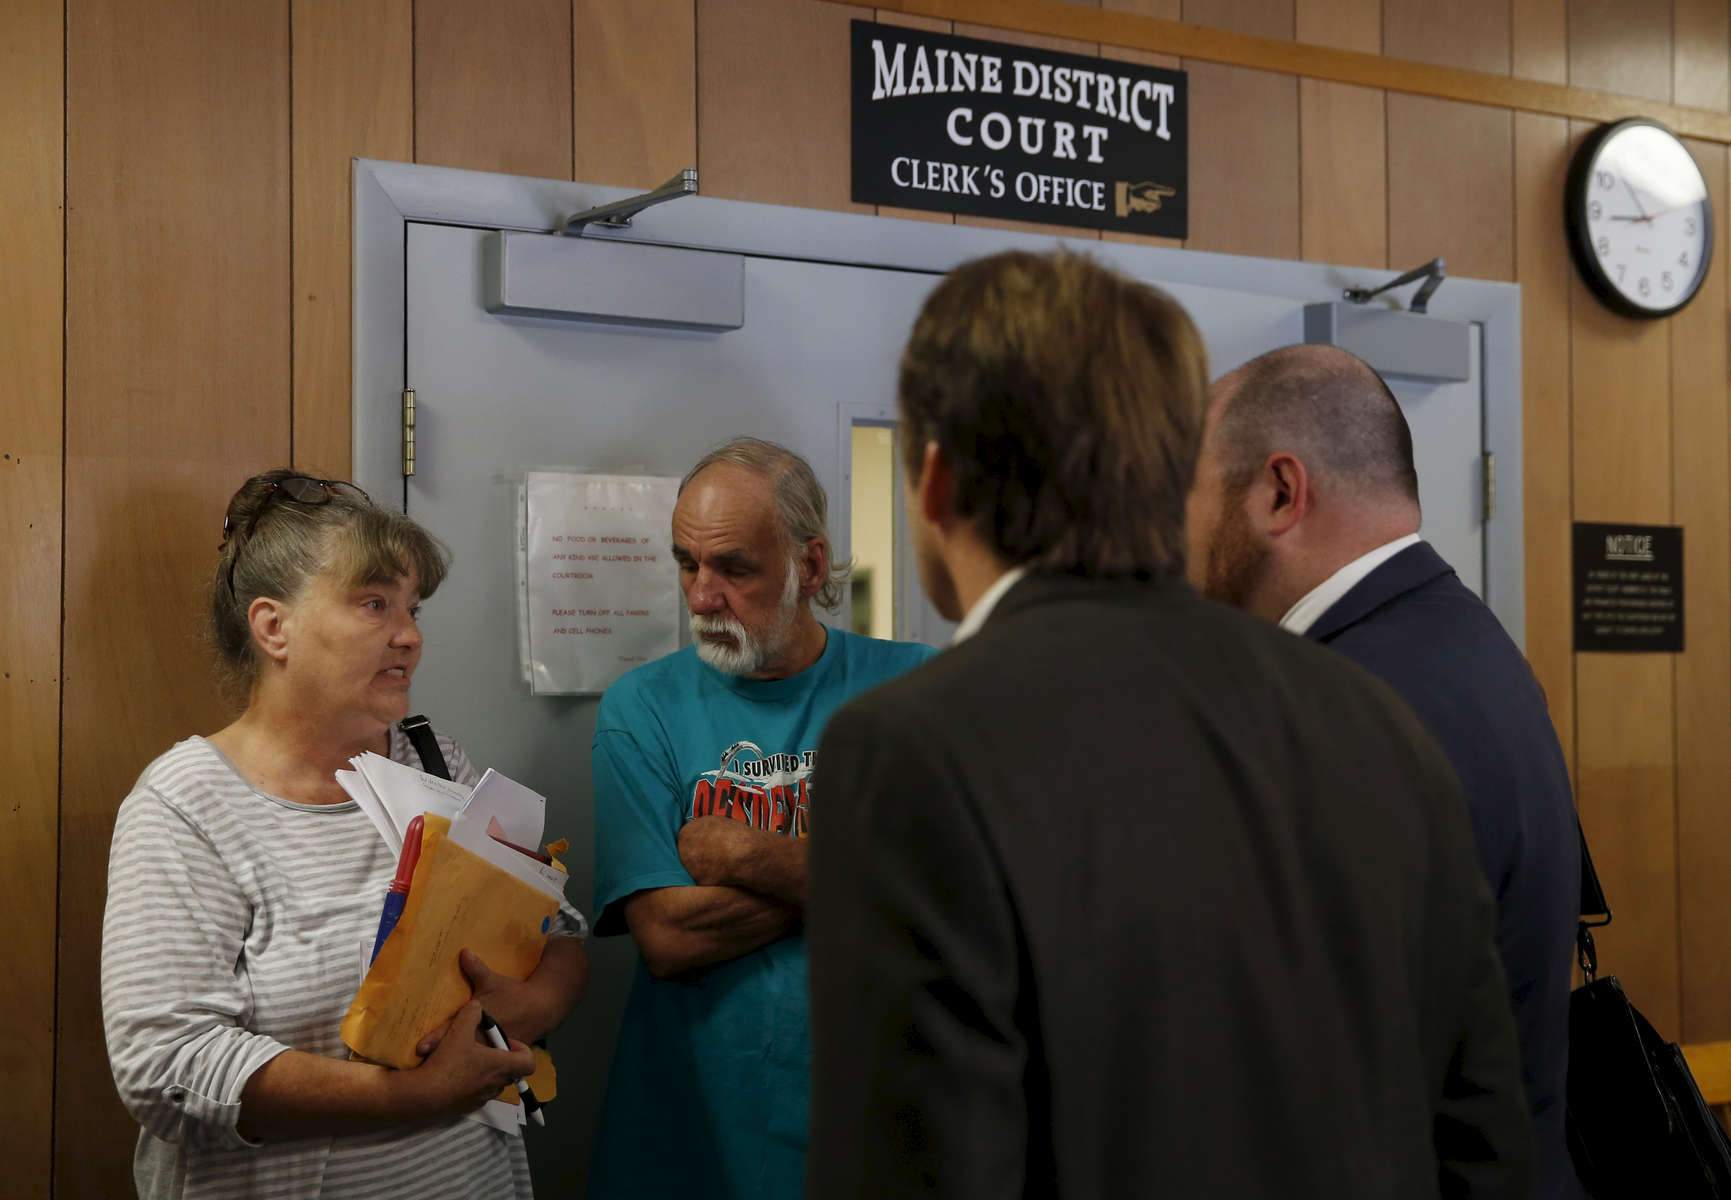 South Paris, Maine -- 7/21/2015-- Without a lawyer they were left without much hope of winning against their old landlord (2nd from L). Lanette and Larry went into the hallway after the judge asked if they might be able to come to an agreement. Things were complicated, the landlord had already sold the land to someone else and the new owner eventually agreed to box up some of the family photos left behind and leave them at the police station for the Grants to retrieve. Jessica Rinaldi/Globe Staff